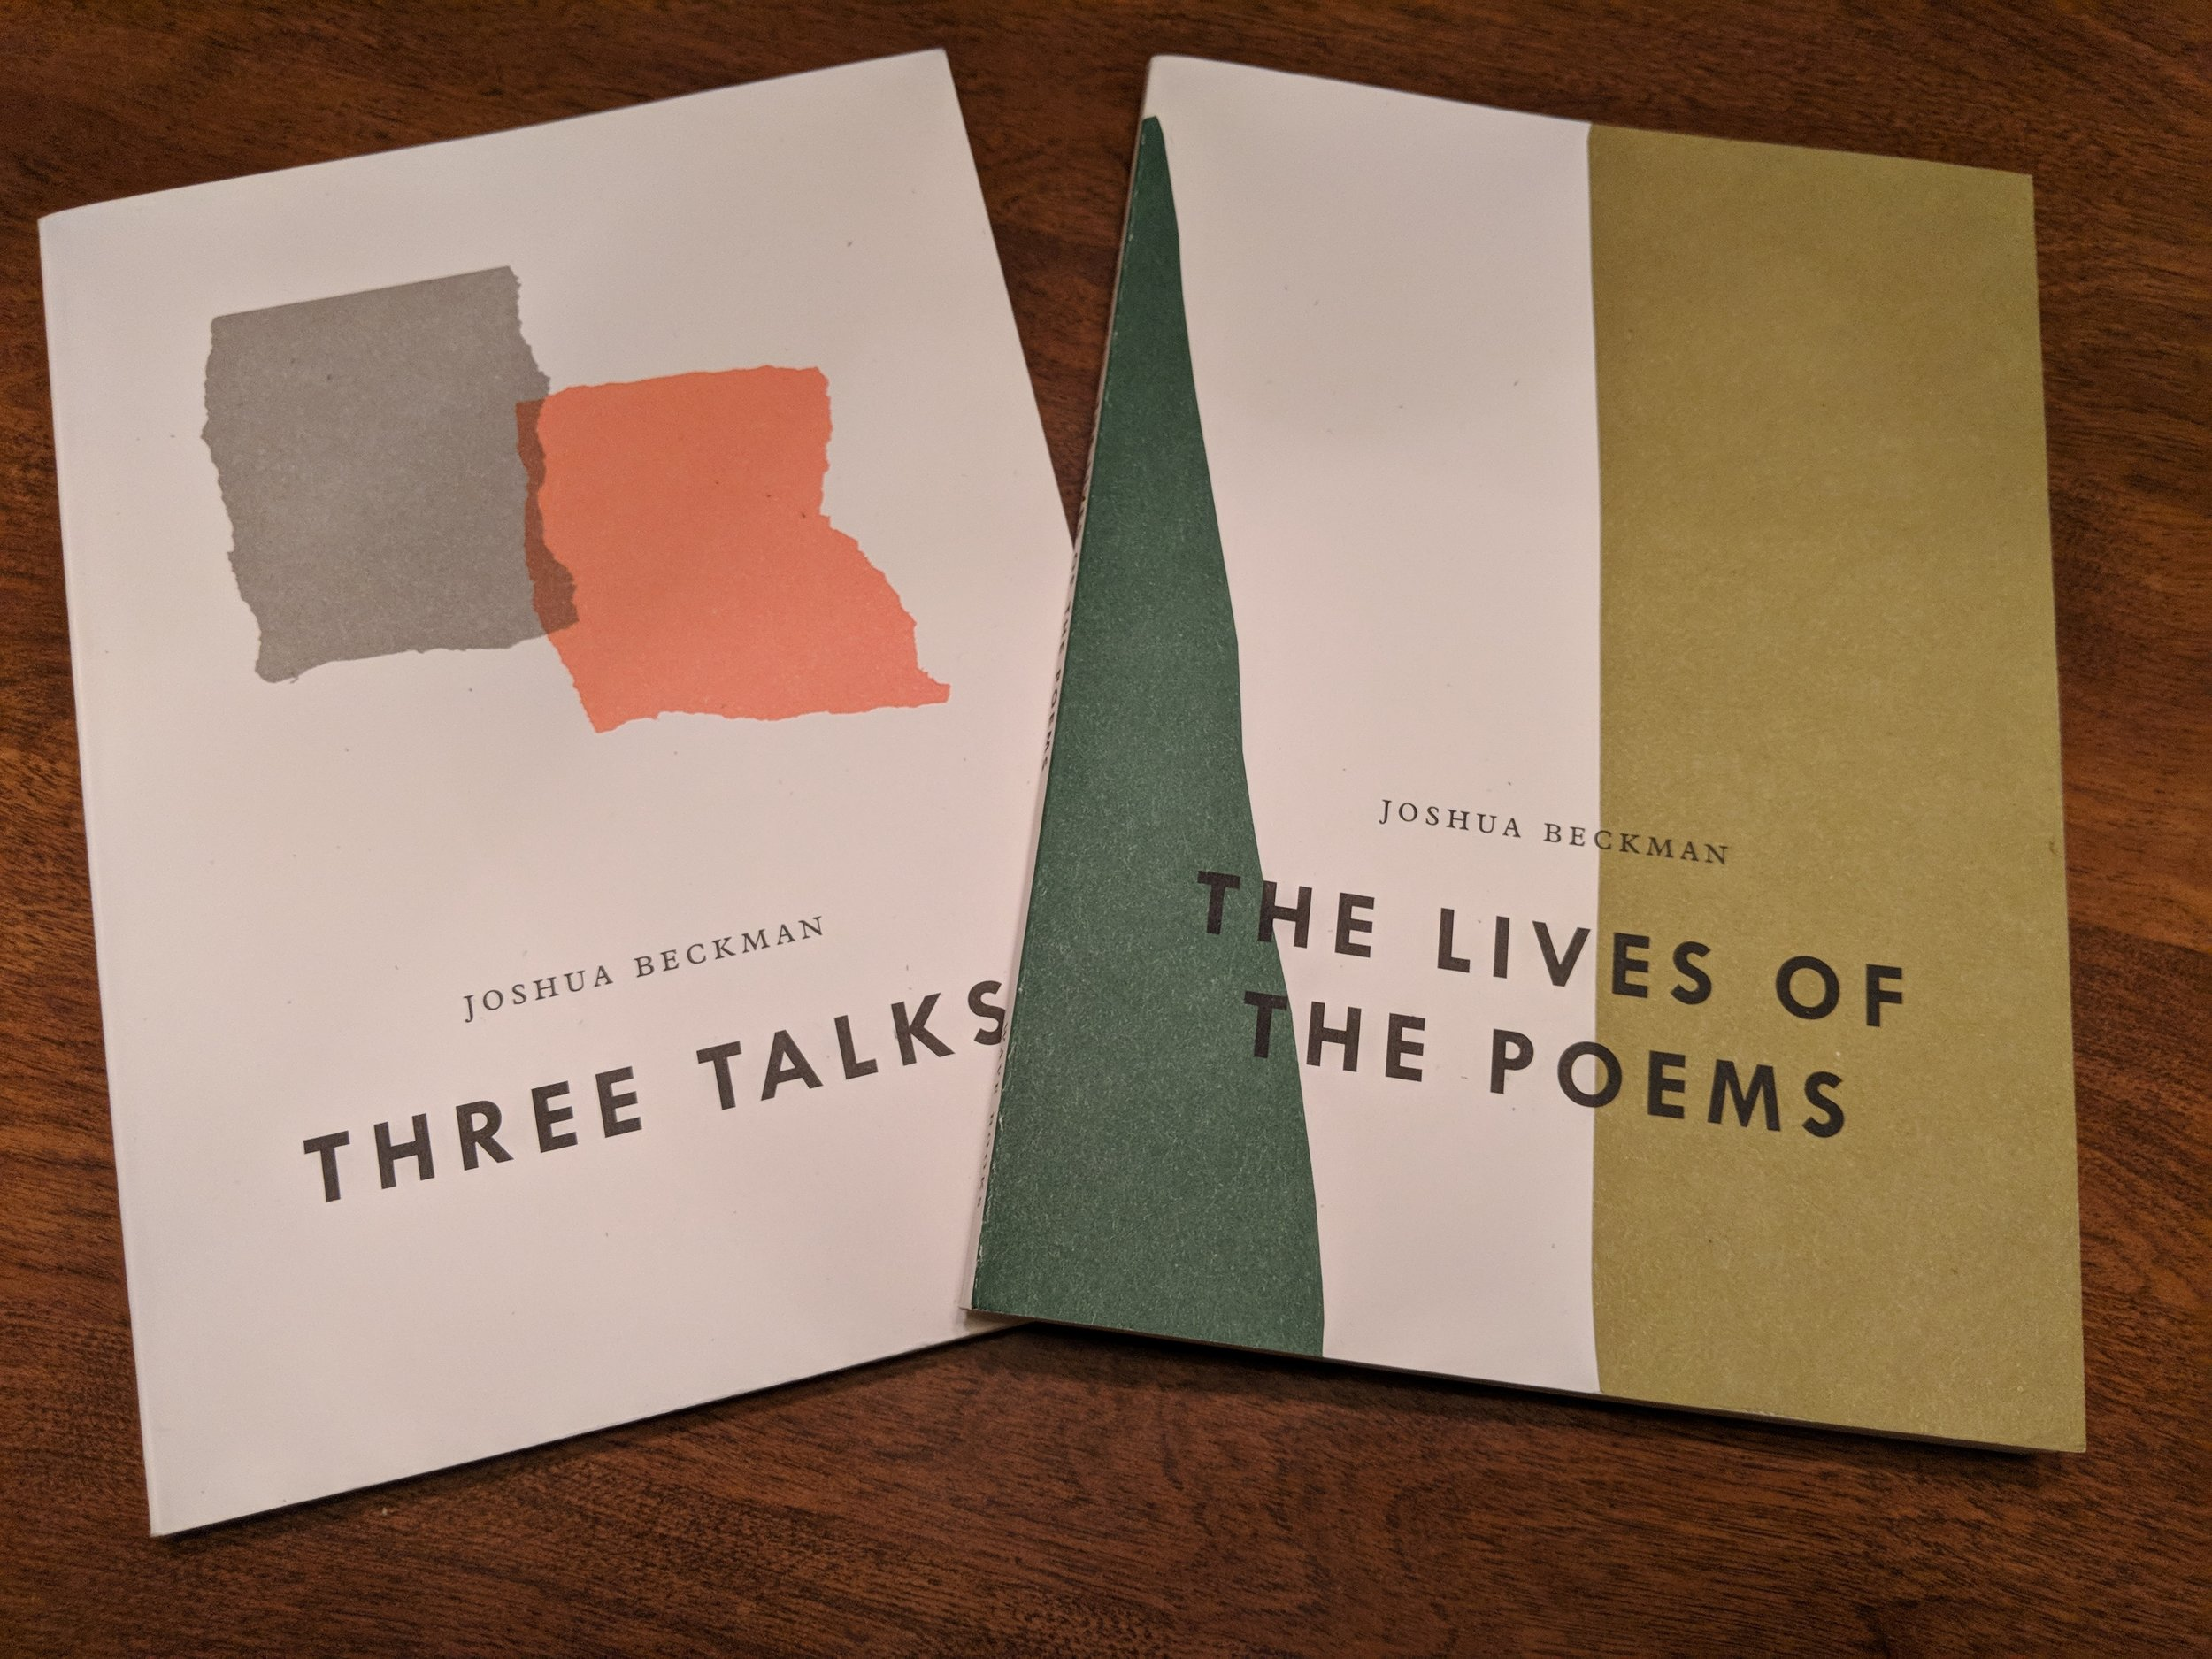 In advance of the workshop we read Beckman's latest projects, two books of poetic essays.